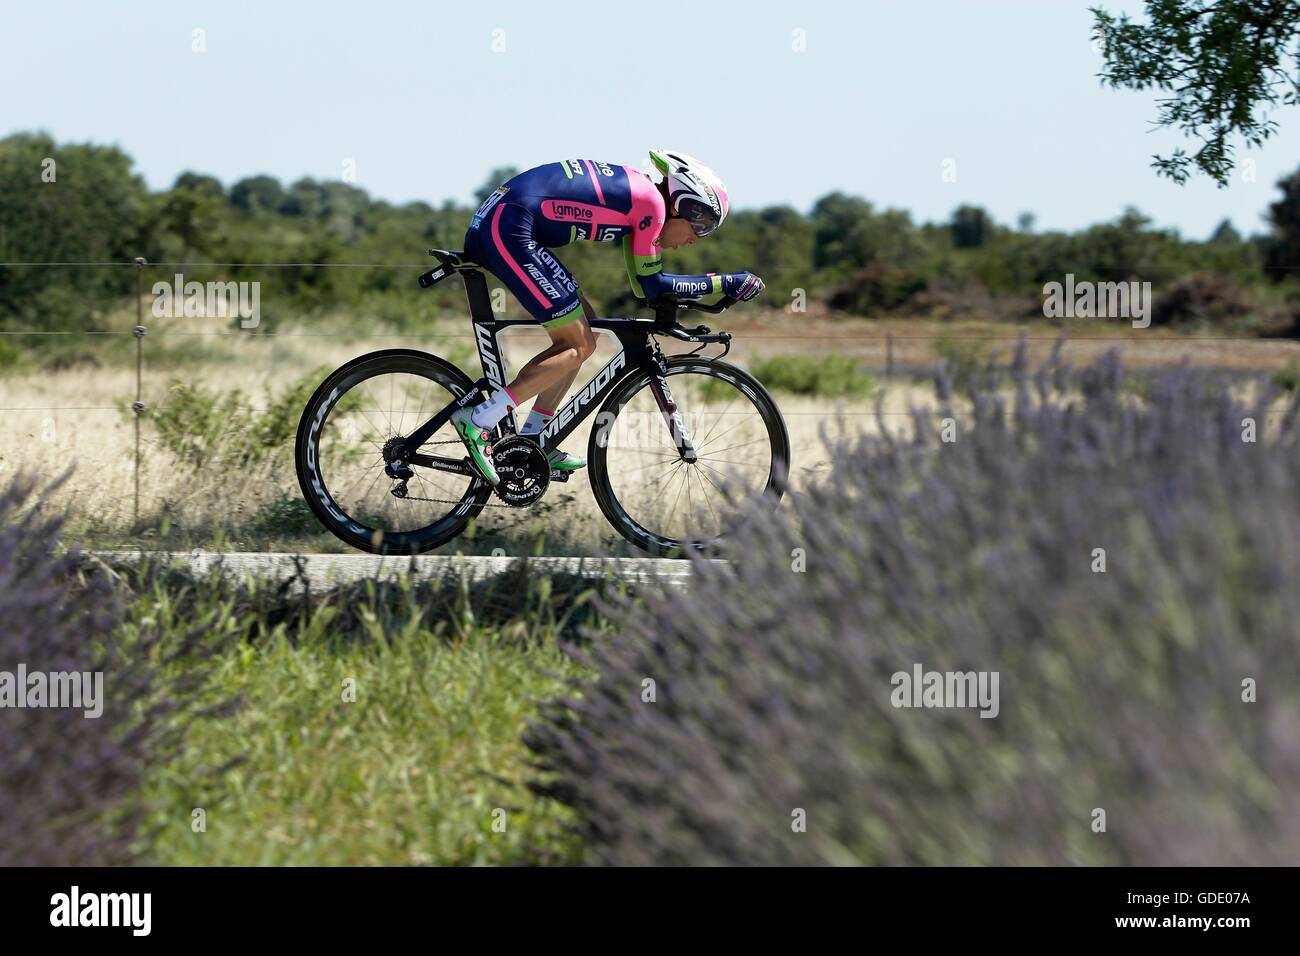 France. 15th July, 2016.  MEINTJES Louis (RSA)  of LAMPRE - MERIDA during stage 13 (time trial) of the 2016 Tour - Stock Image